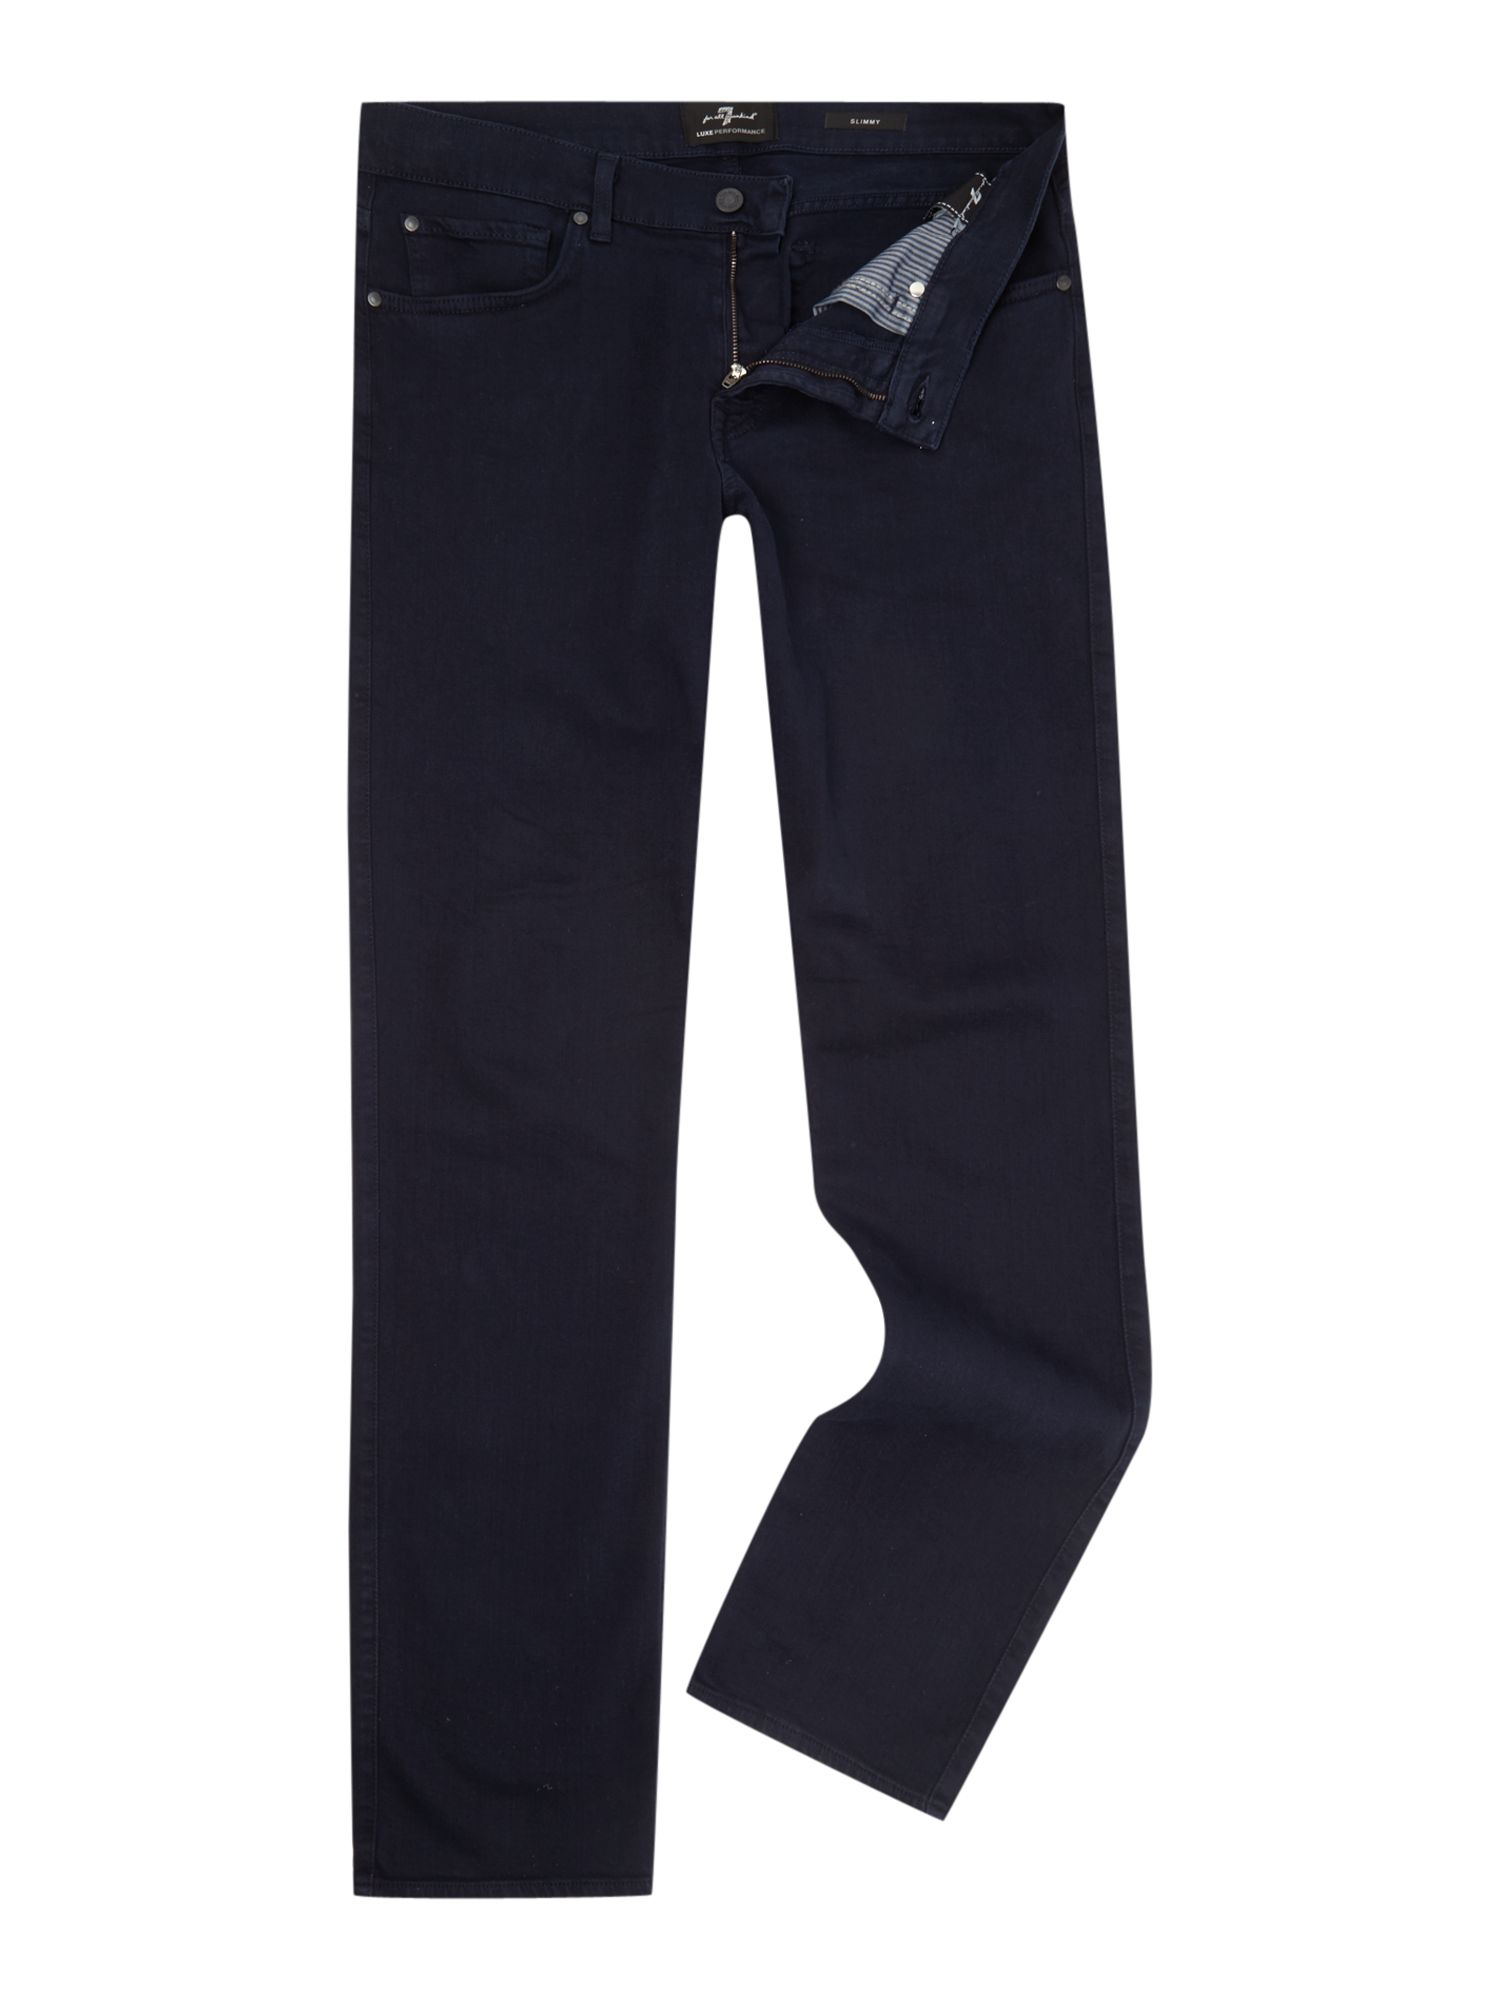 7 For All Mankind Men's 7 For All Mankind Slimmy Slim Fit Luxe Performance Colour Jeans, Navy